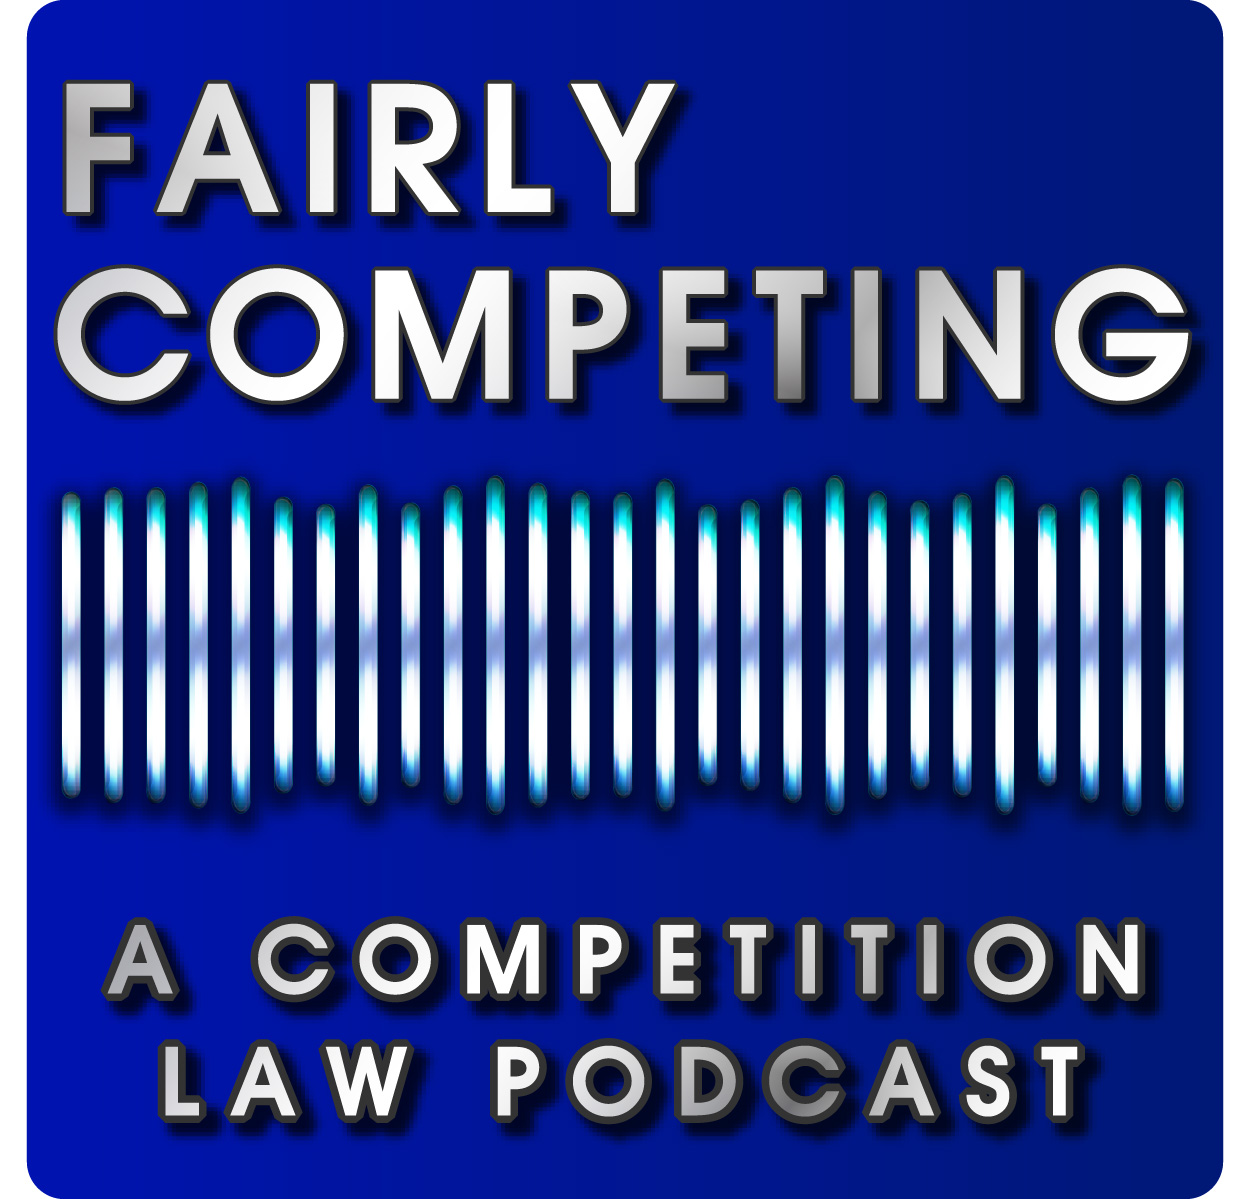 law that is unfair Unfair competition is regulated in the turkish commercial code law no: 6102 and the competition law on the protection of competition, law no: 4054 turkey anti-trust/competition law baspinar & partners 23 jan 2015.